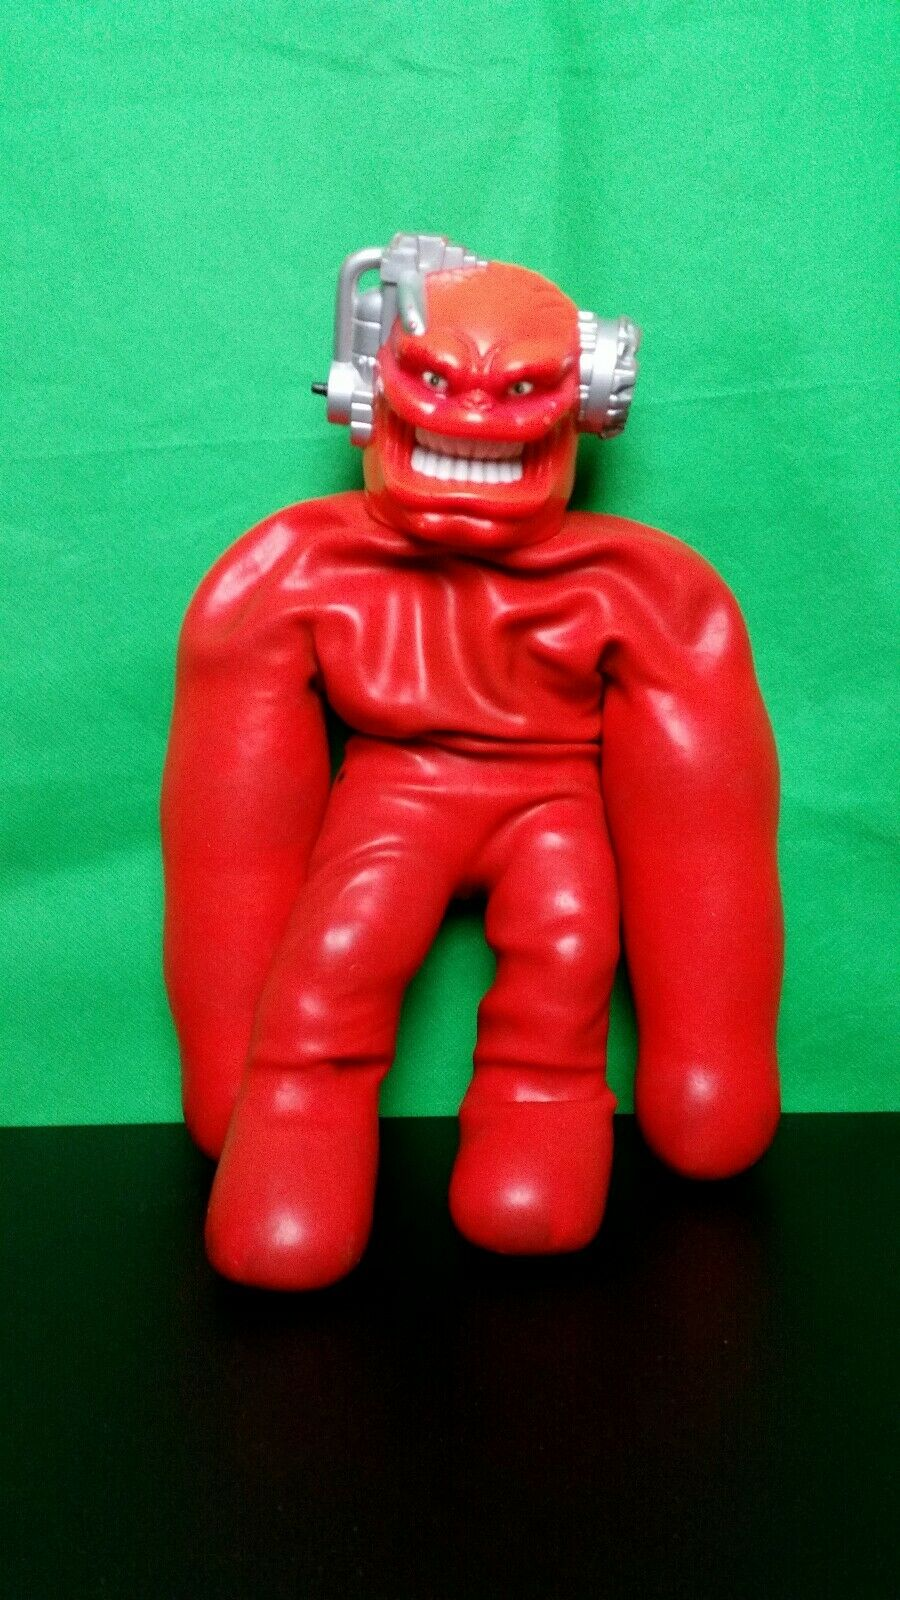 Original Vac Man Toy (1994)   Stretch Armstrong   Cap Toys